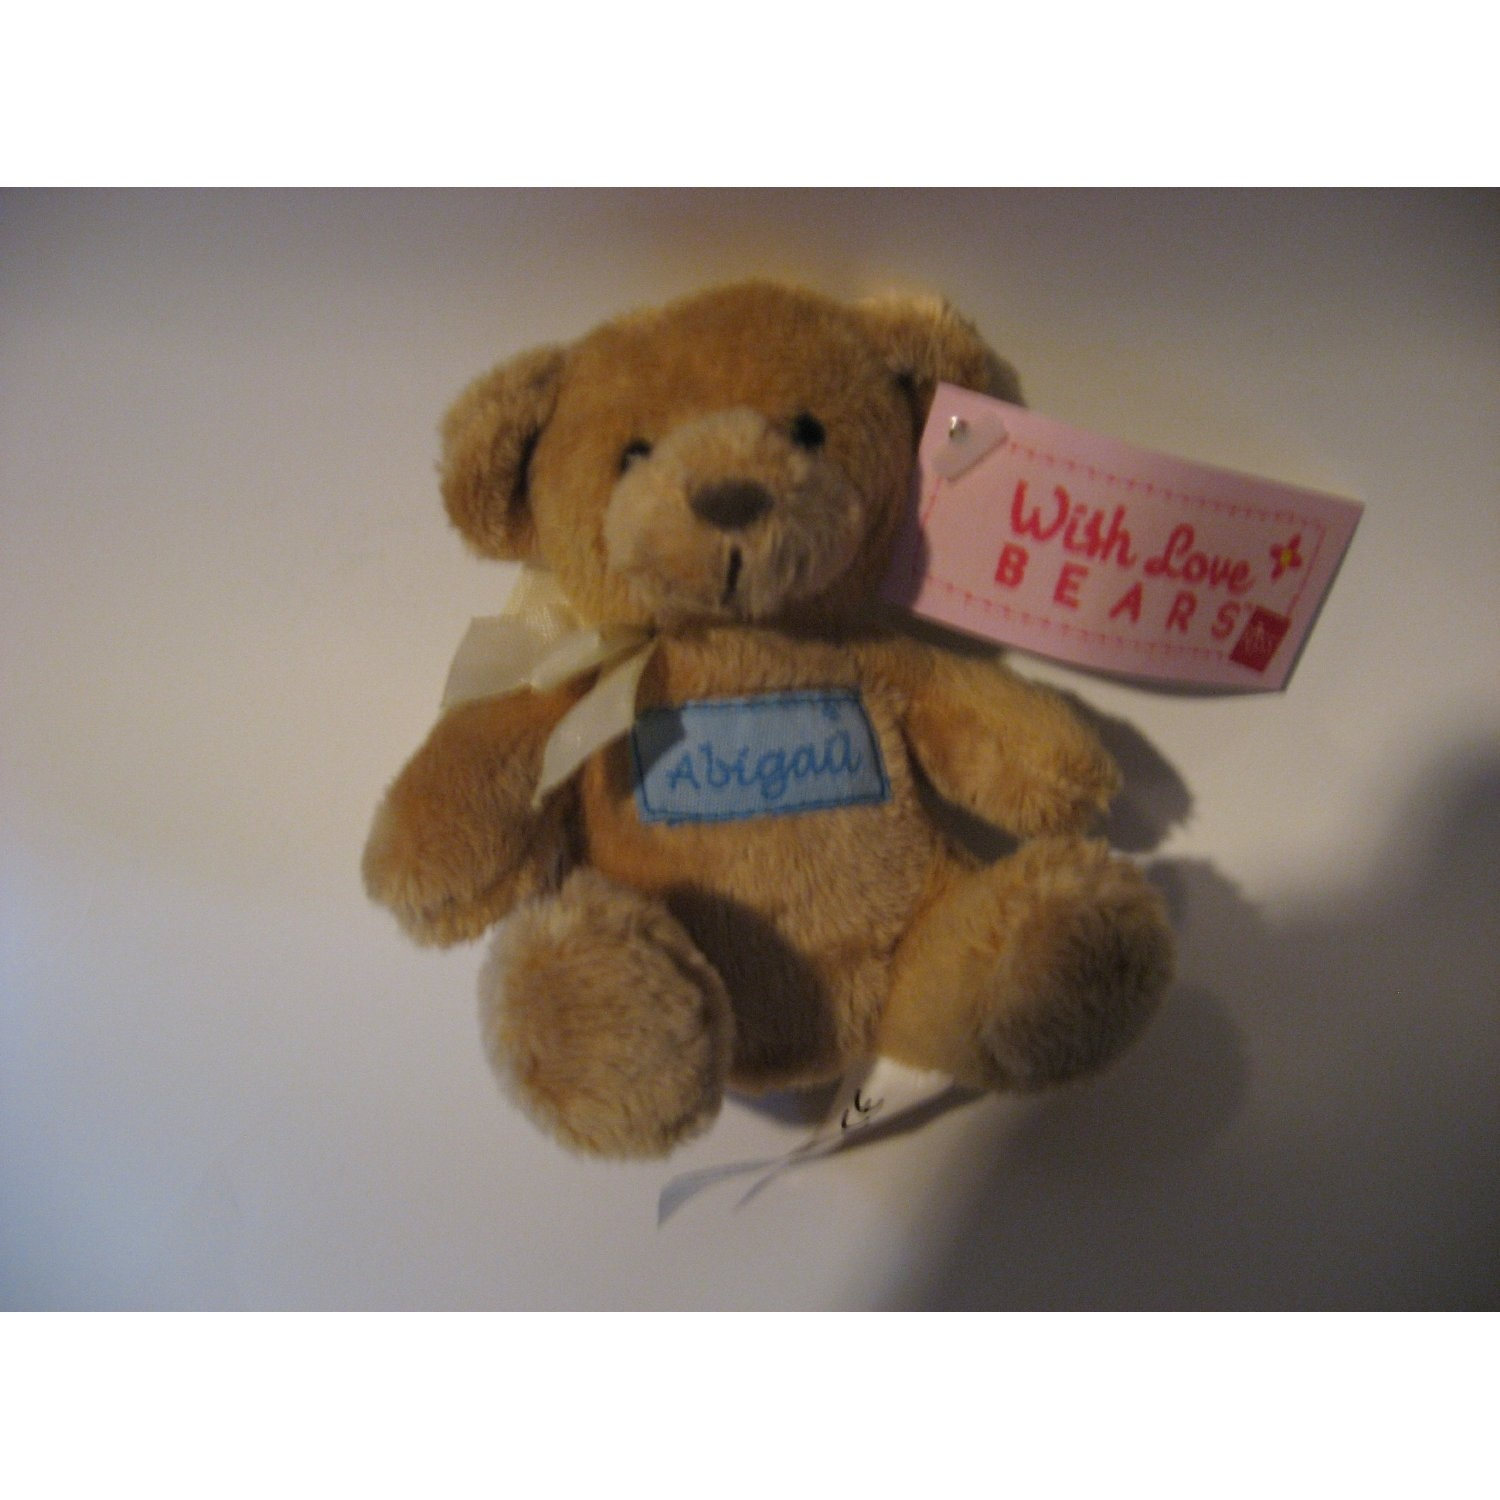 With love bears personalised embroidered name abigail